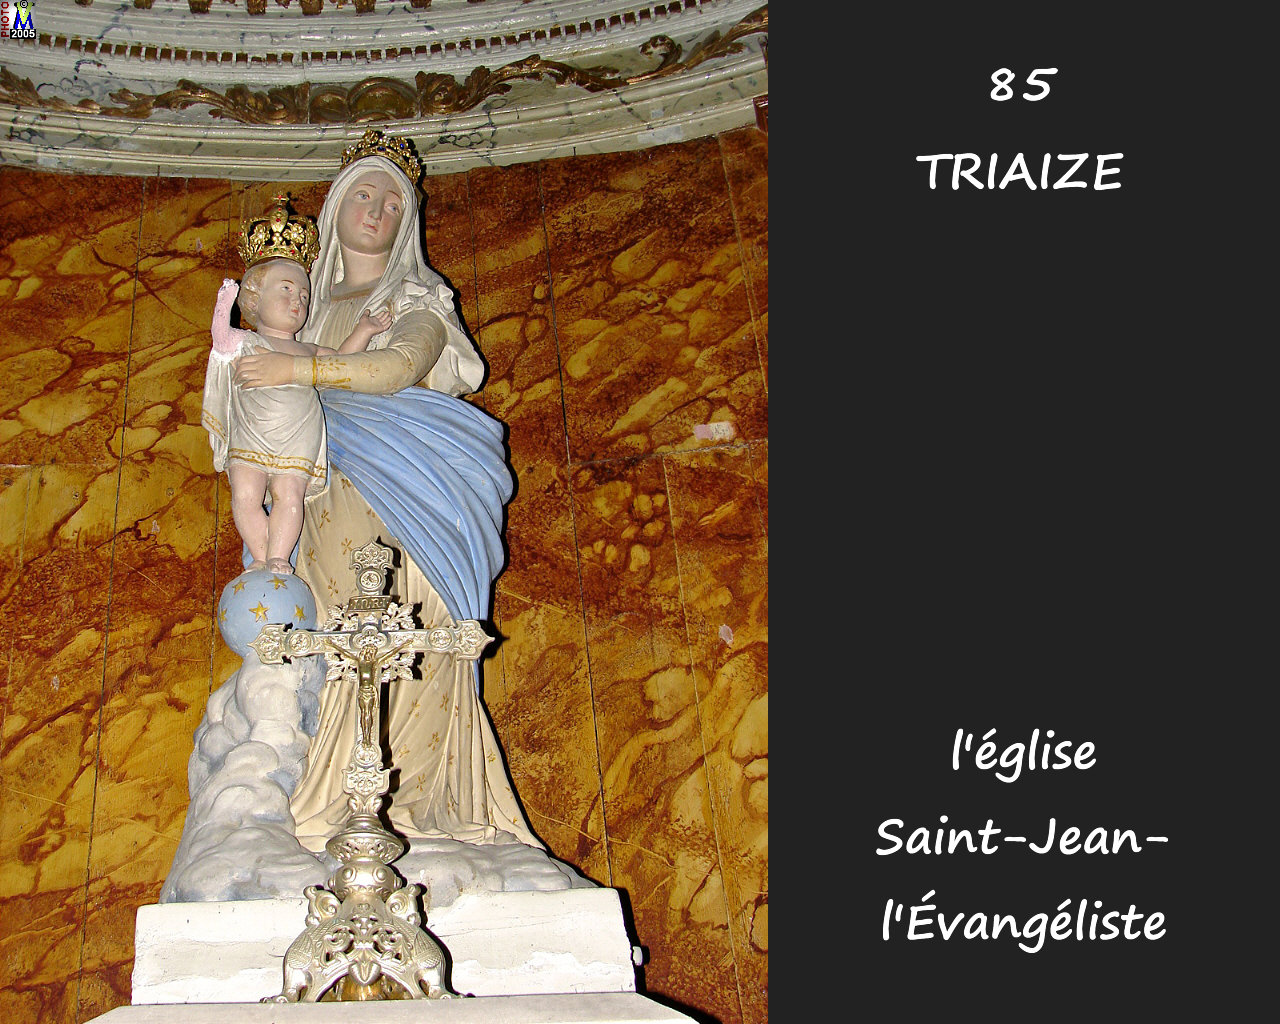 85TRIAIZE_eglise_214.jpg